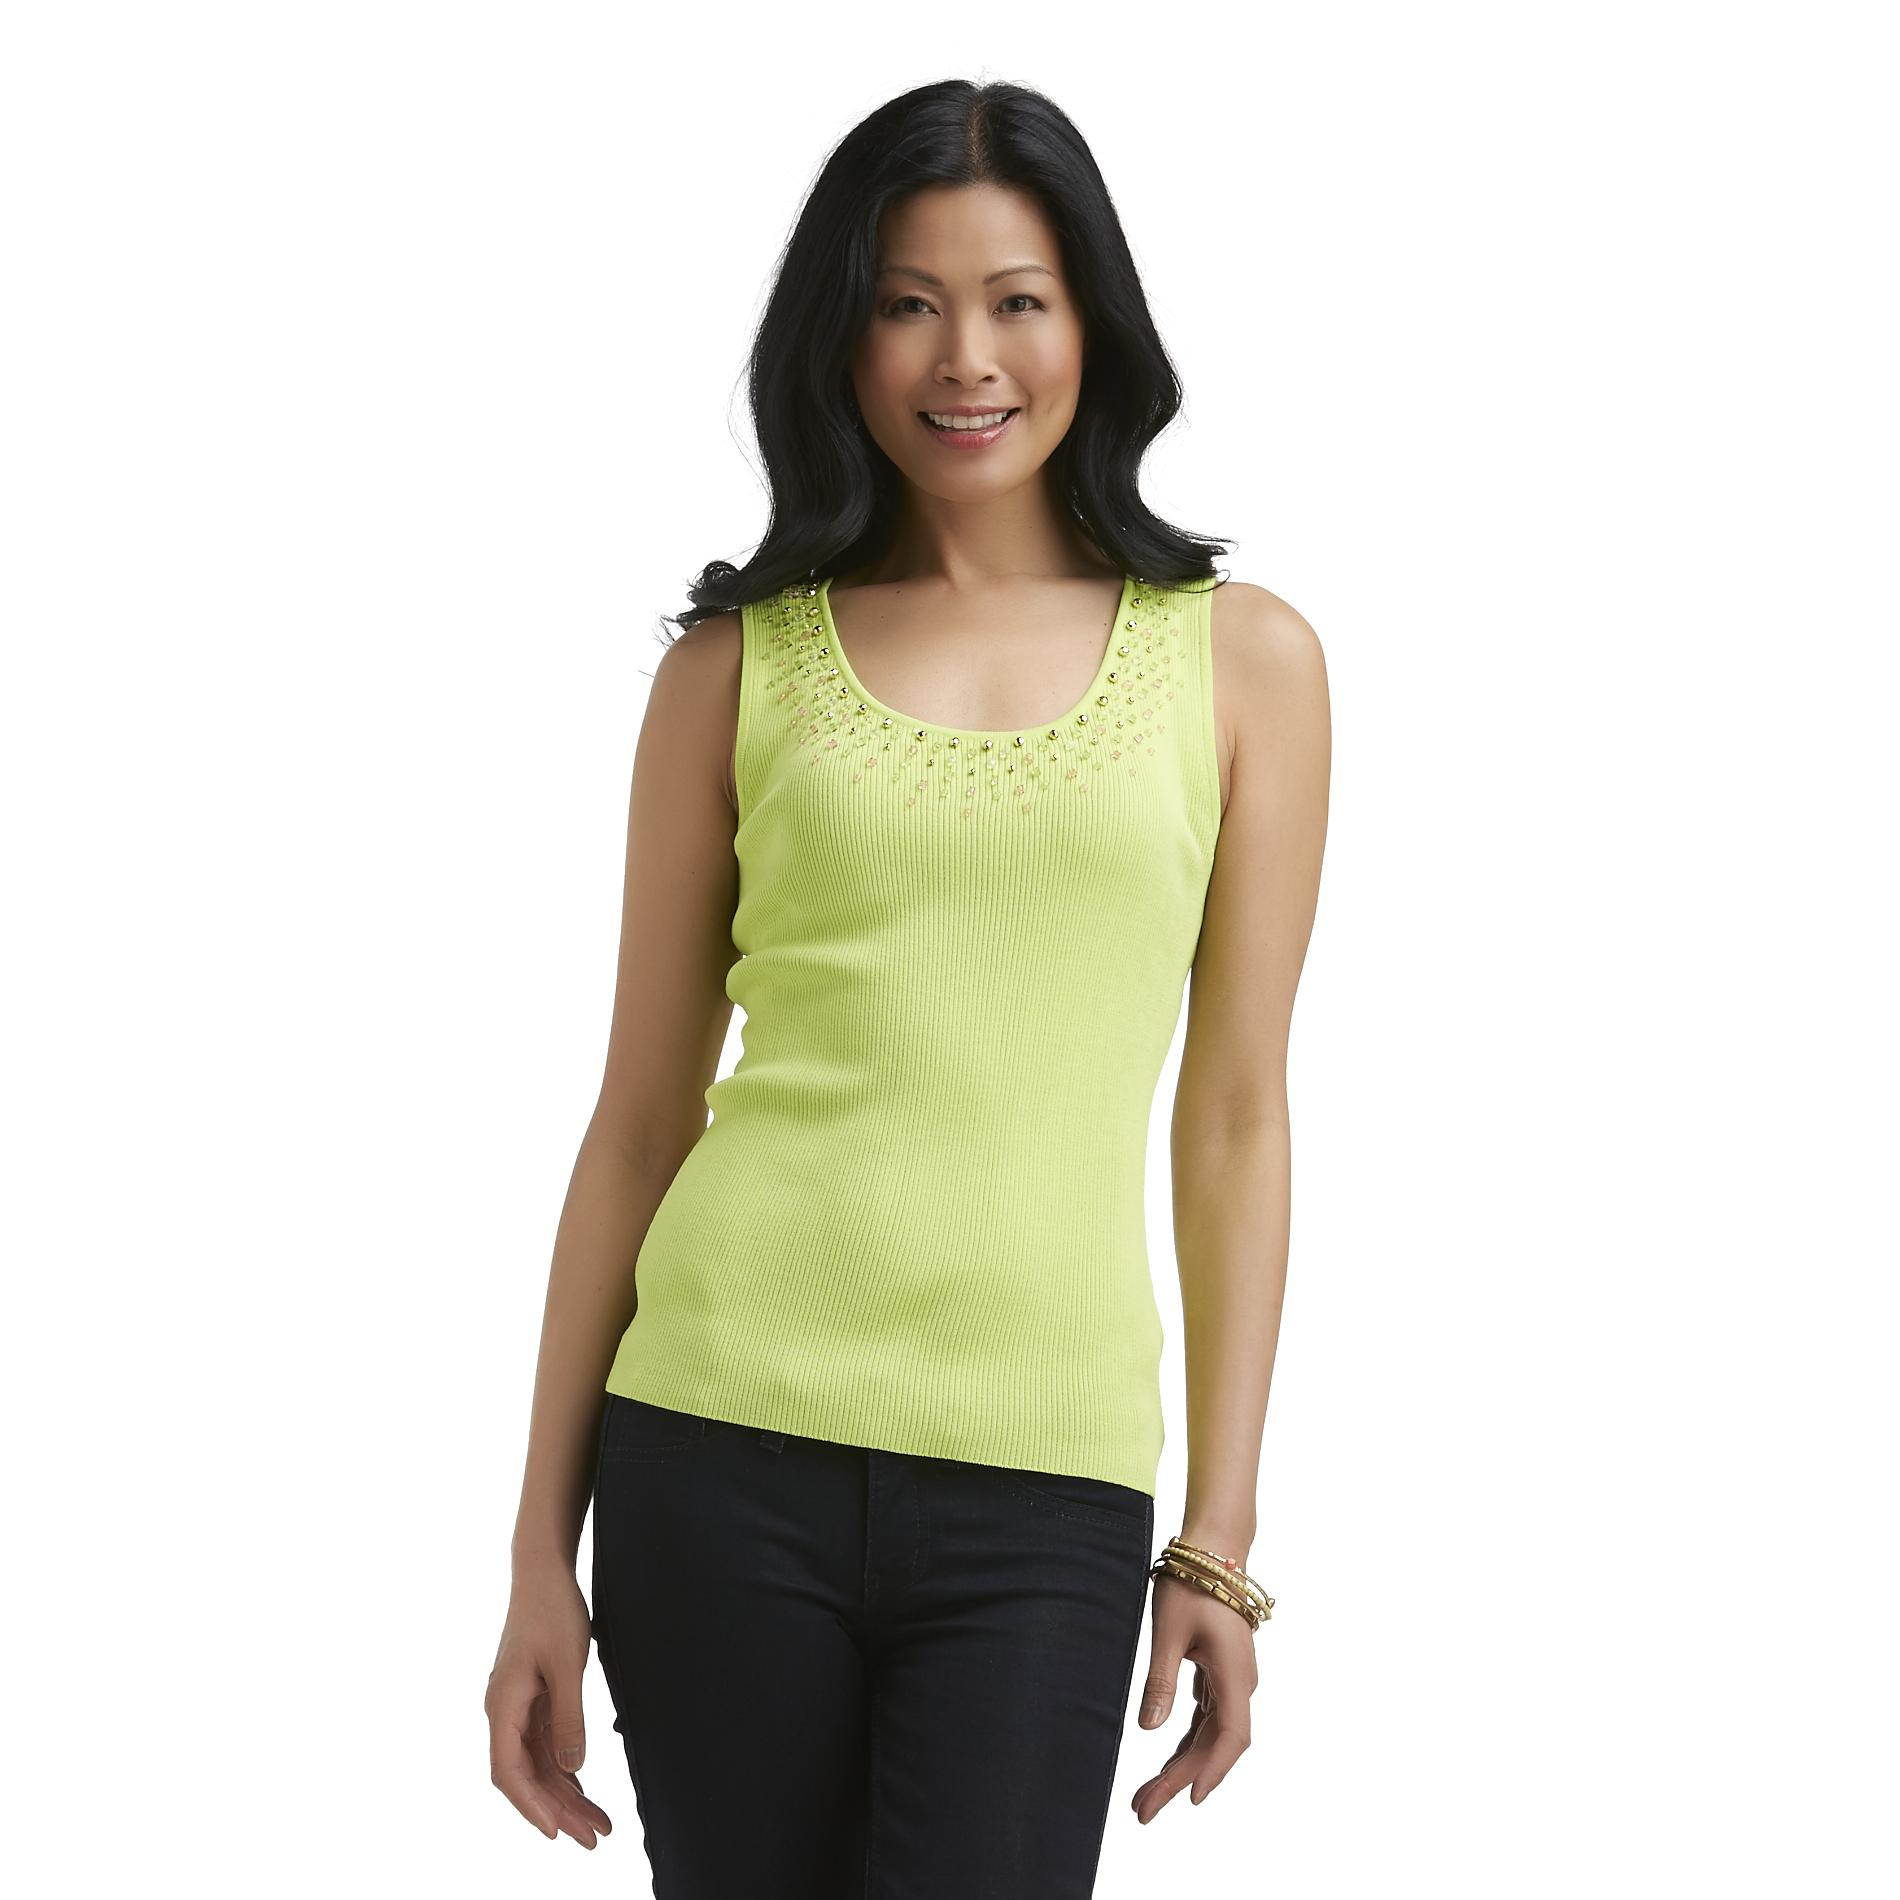 Sapphire Star Women's Rib Knit Sleeveless Top - Beaded at Sears.com